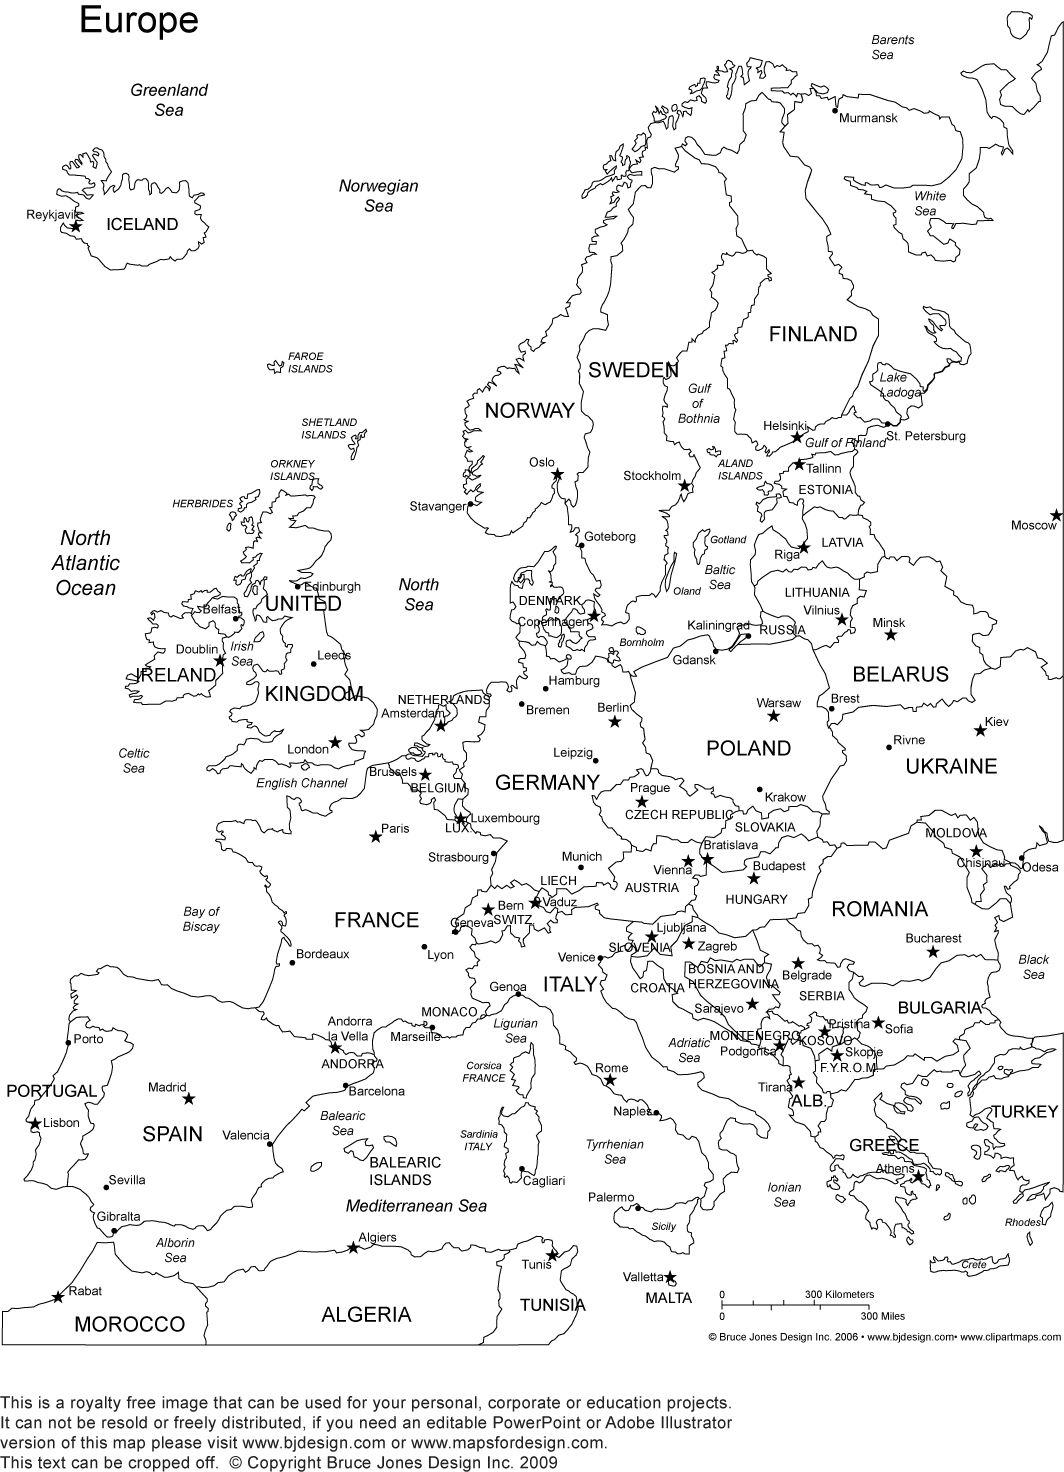 Europe Printable Blank Map Royalty Free Jpg As Well As Other - Blank Us Map Printable Pdf